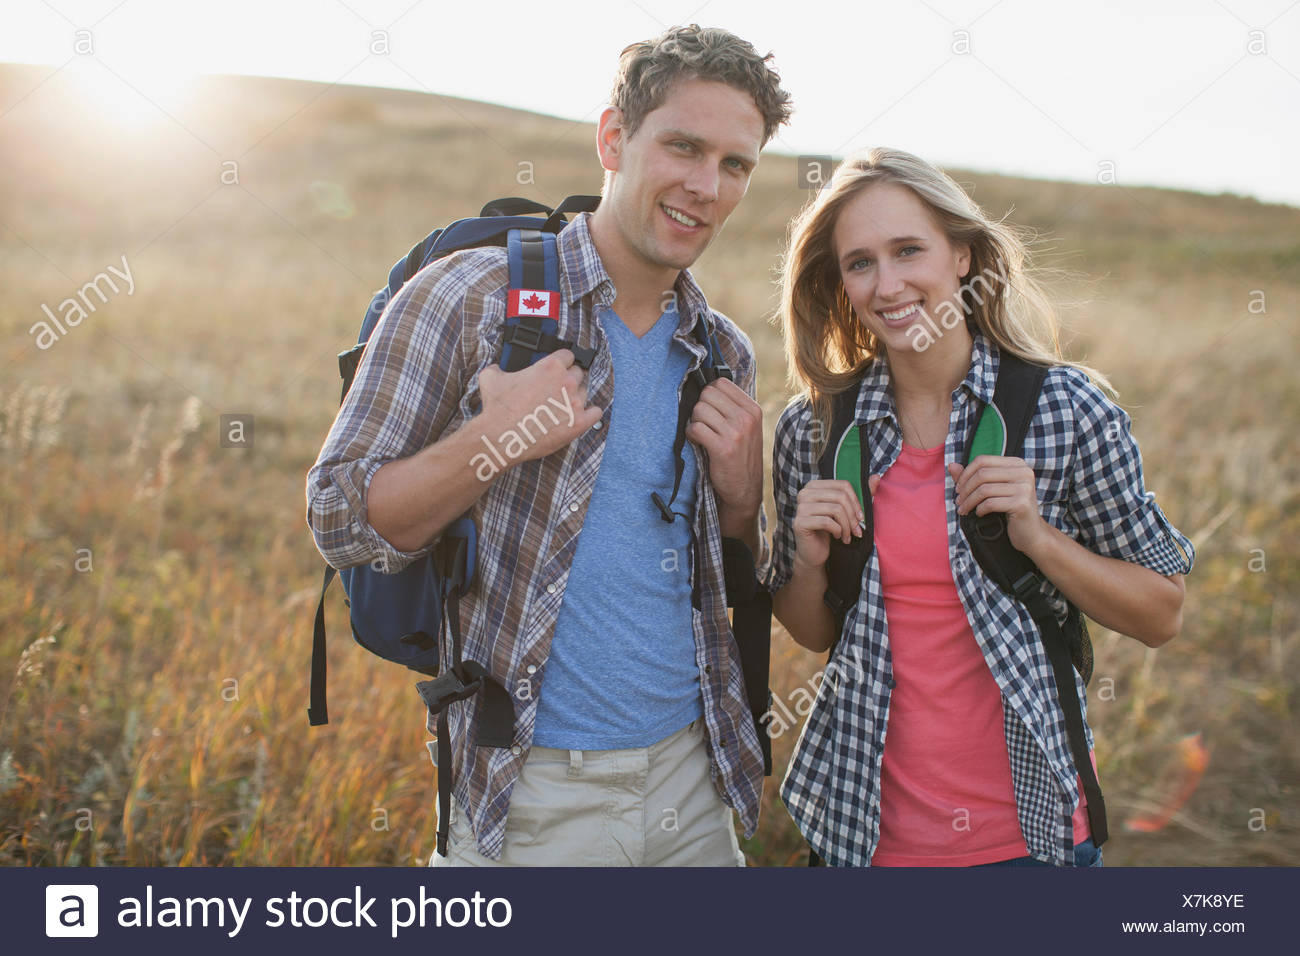 Attractive couple with backpacks in field. - Stock Image